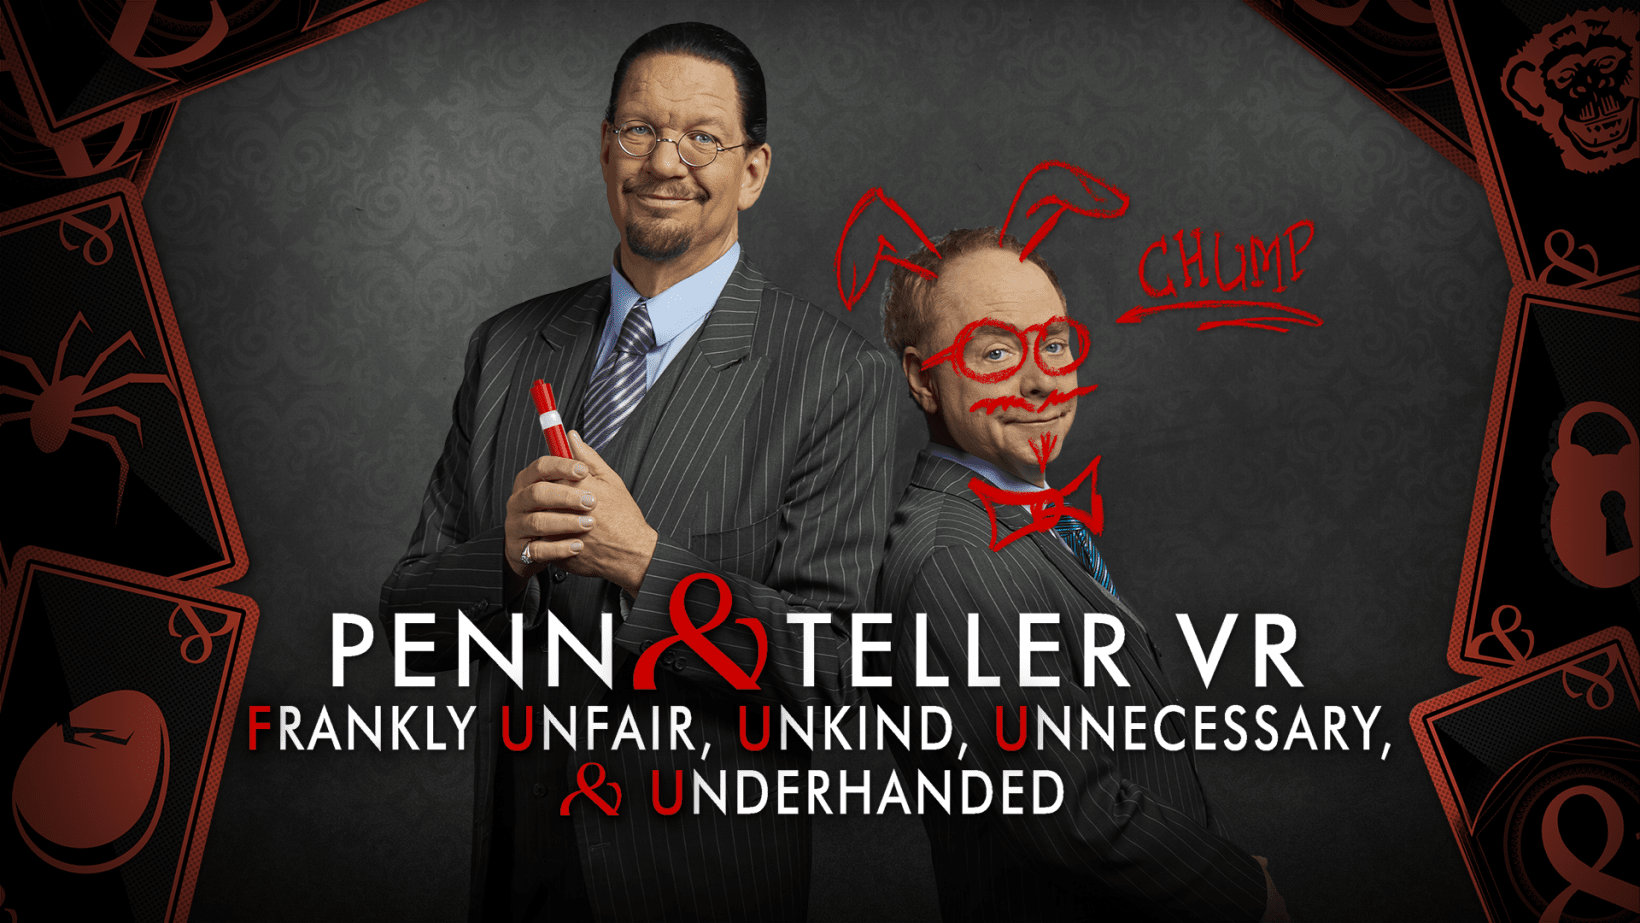 Review: Penn & Teller's VR experience is hilarious, magical, and ...